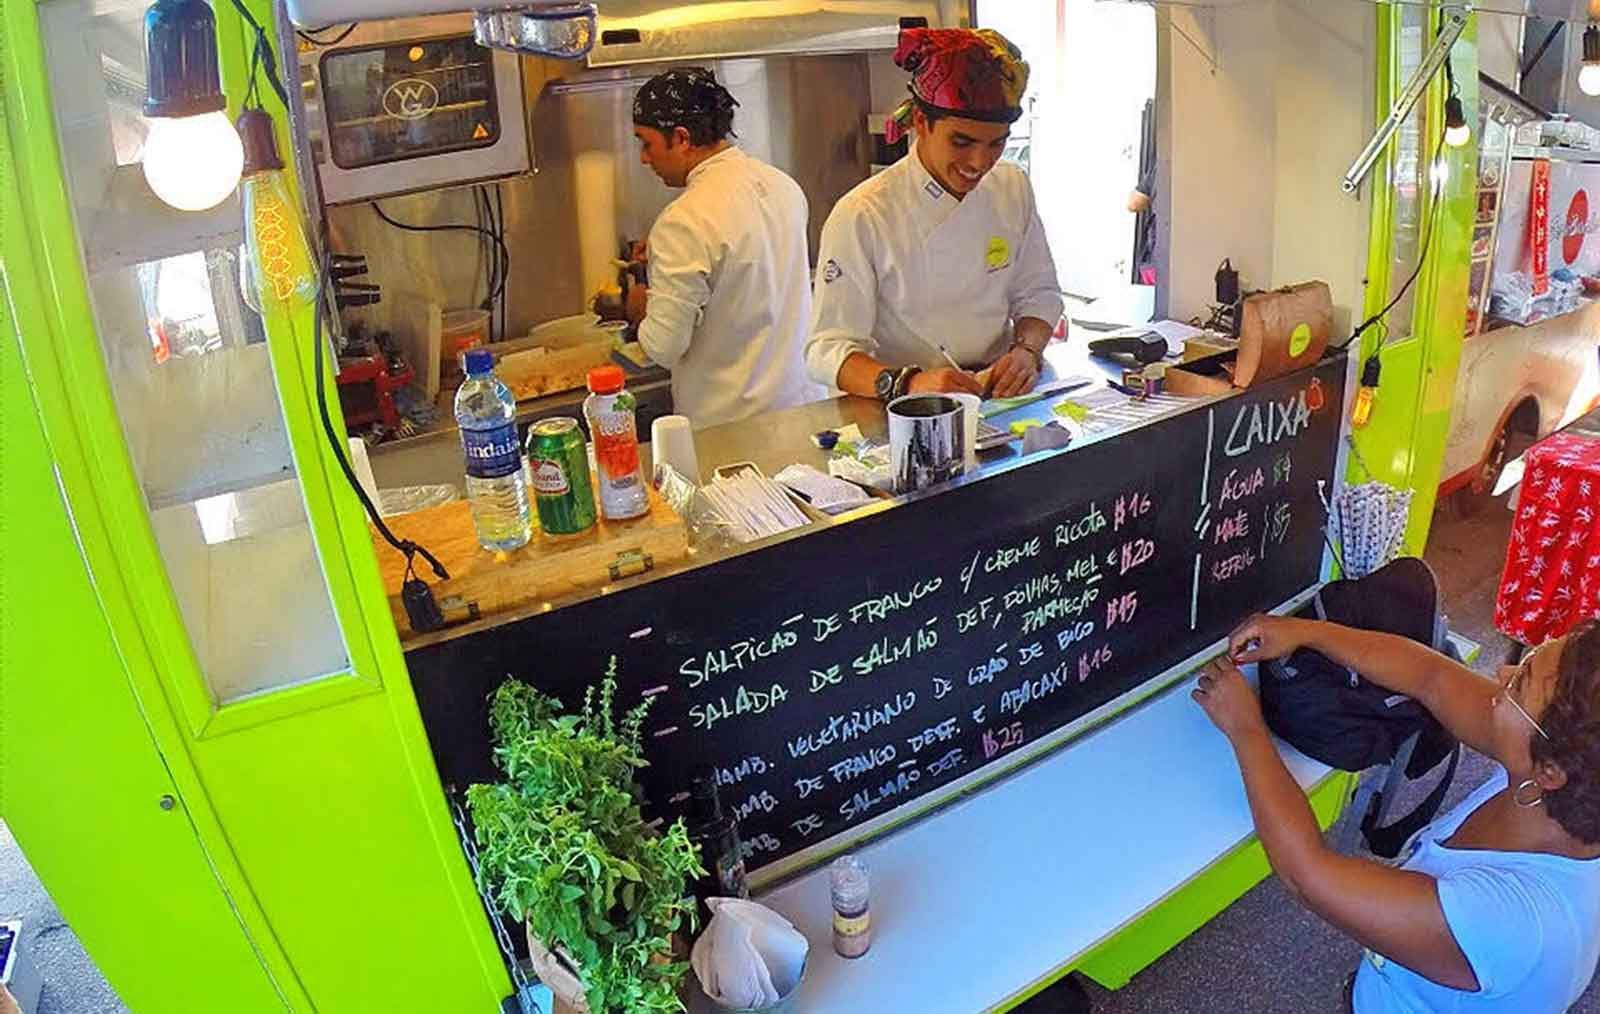 Abner Lopes, do Graviola Gourmet Food Truck